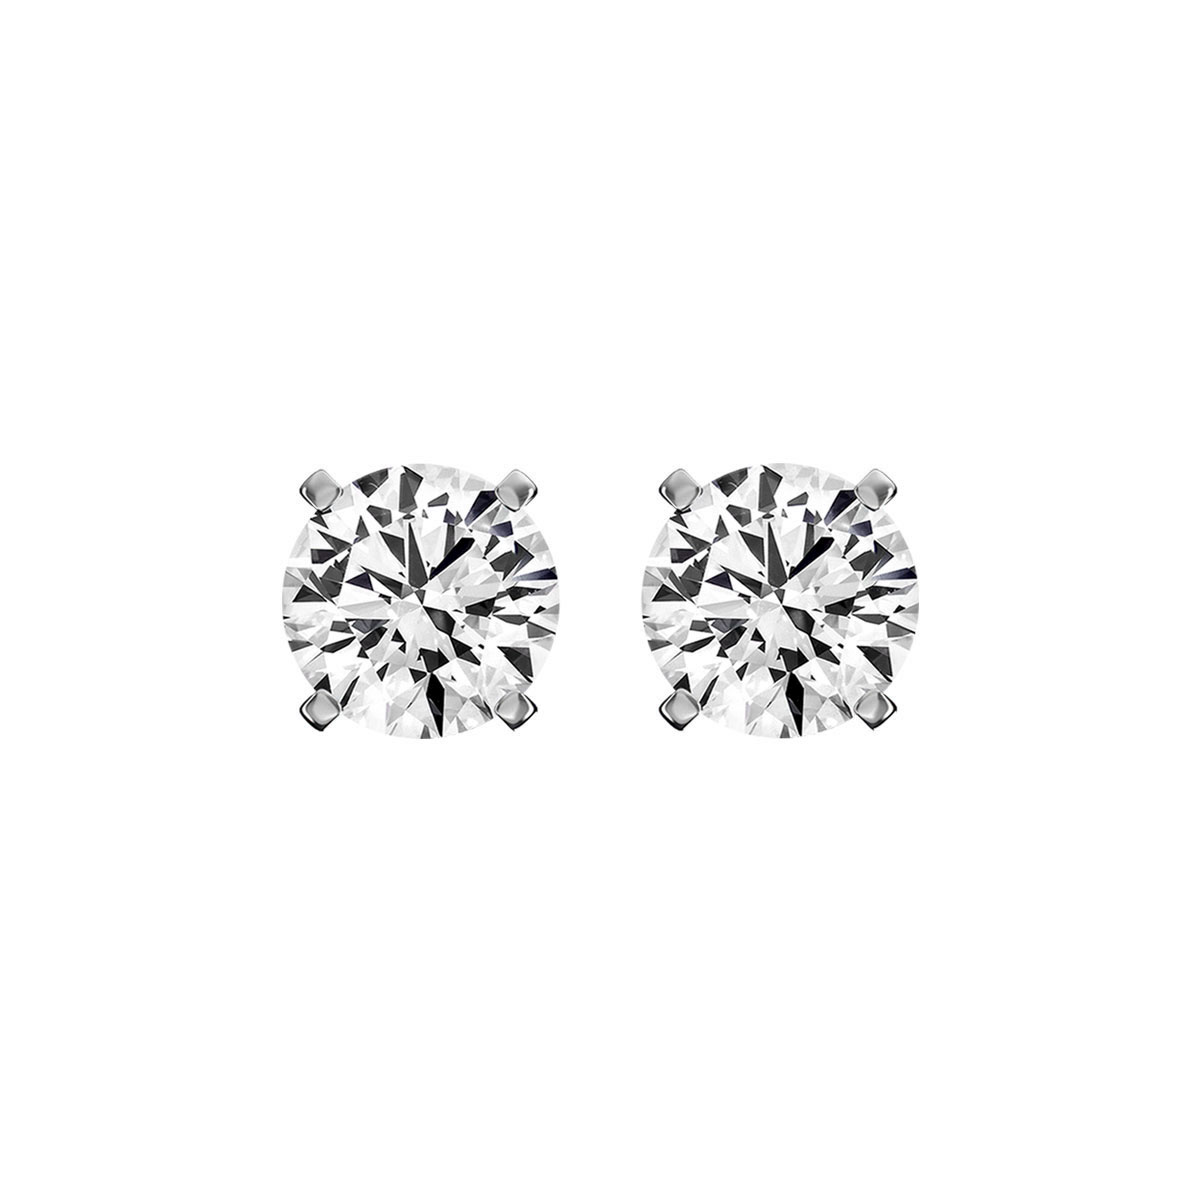 14K White Gold Diamond Stud Earrings ( 1/5 ct. tw)